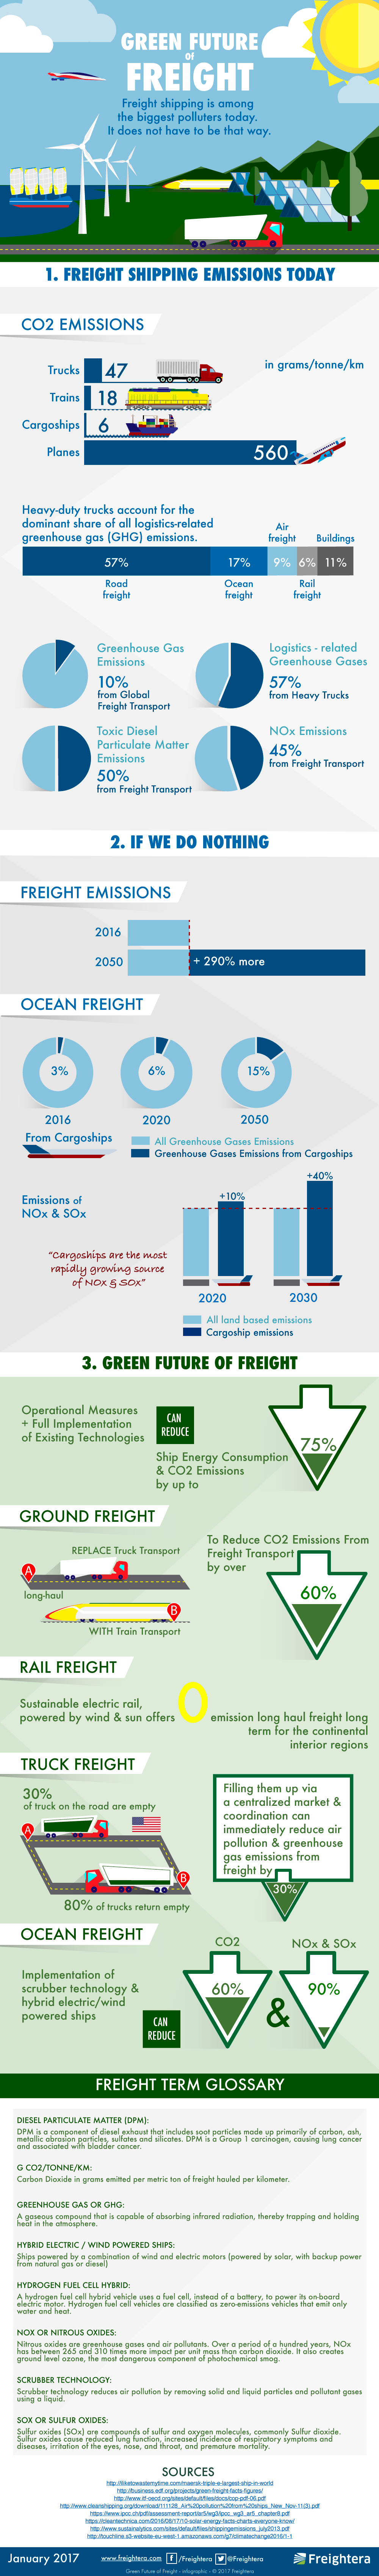 Green future of freight - Infographic - PORTOCARGO - International Transport - International Transport of Goods - freight forwarding